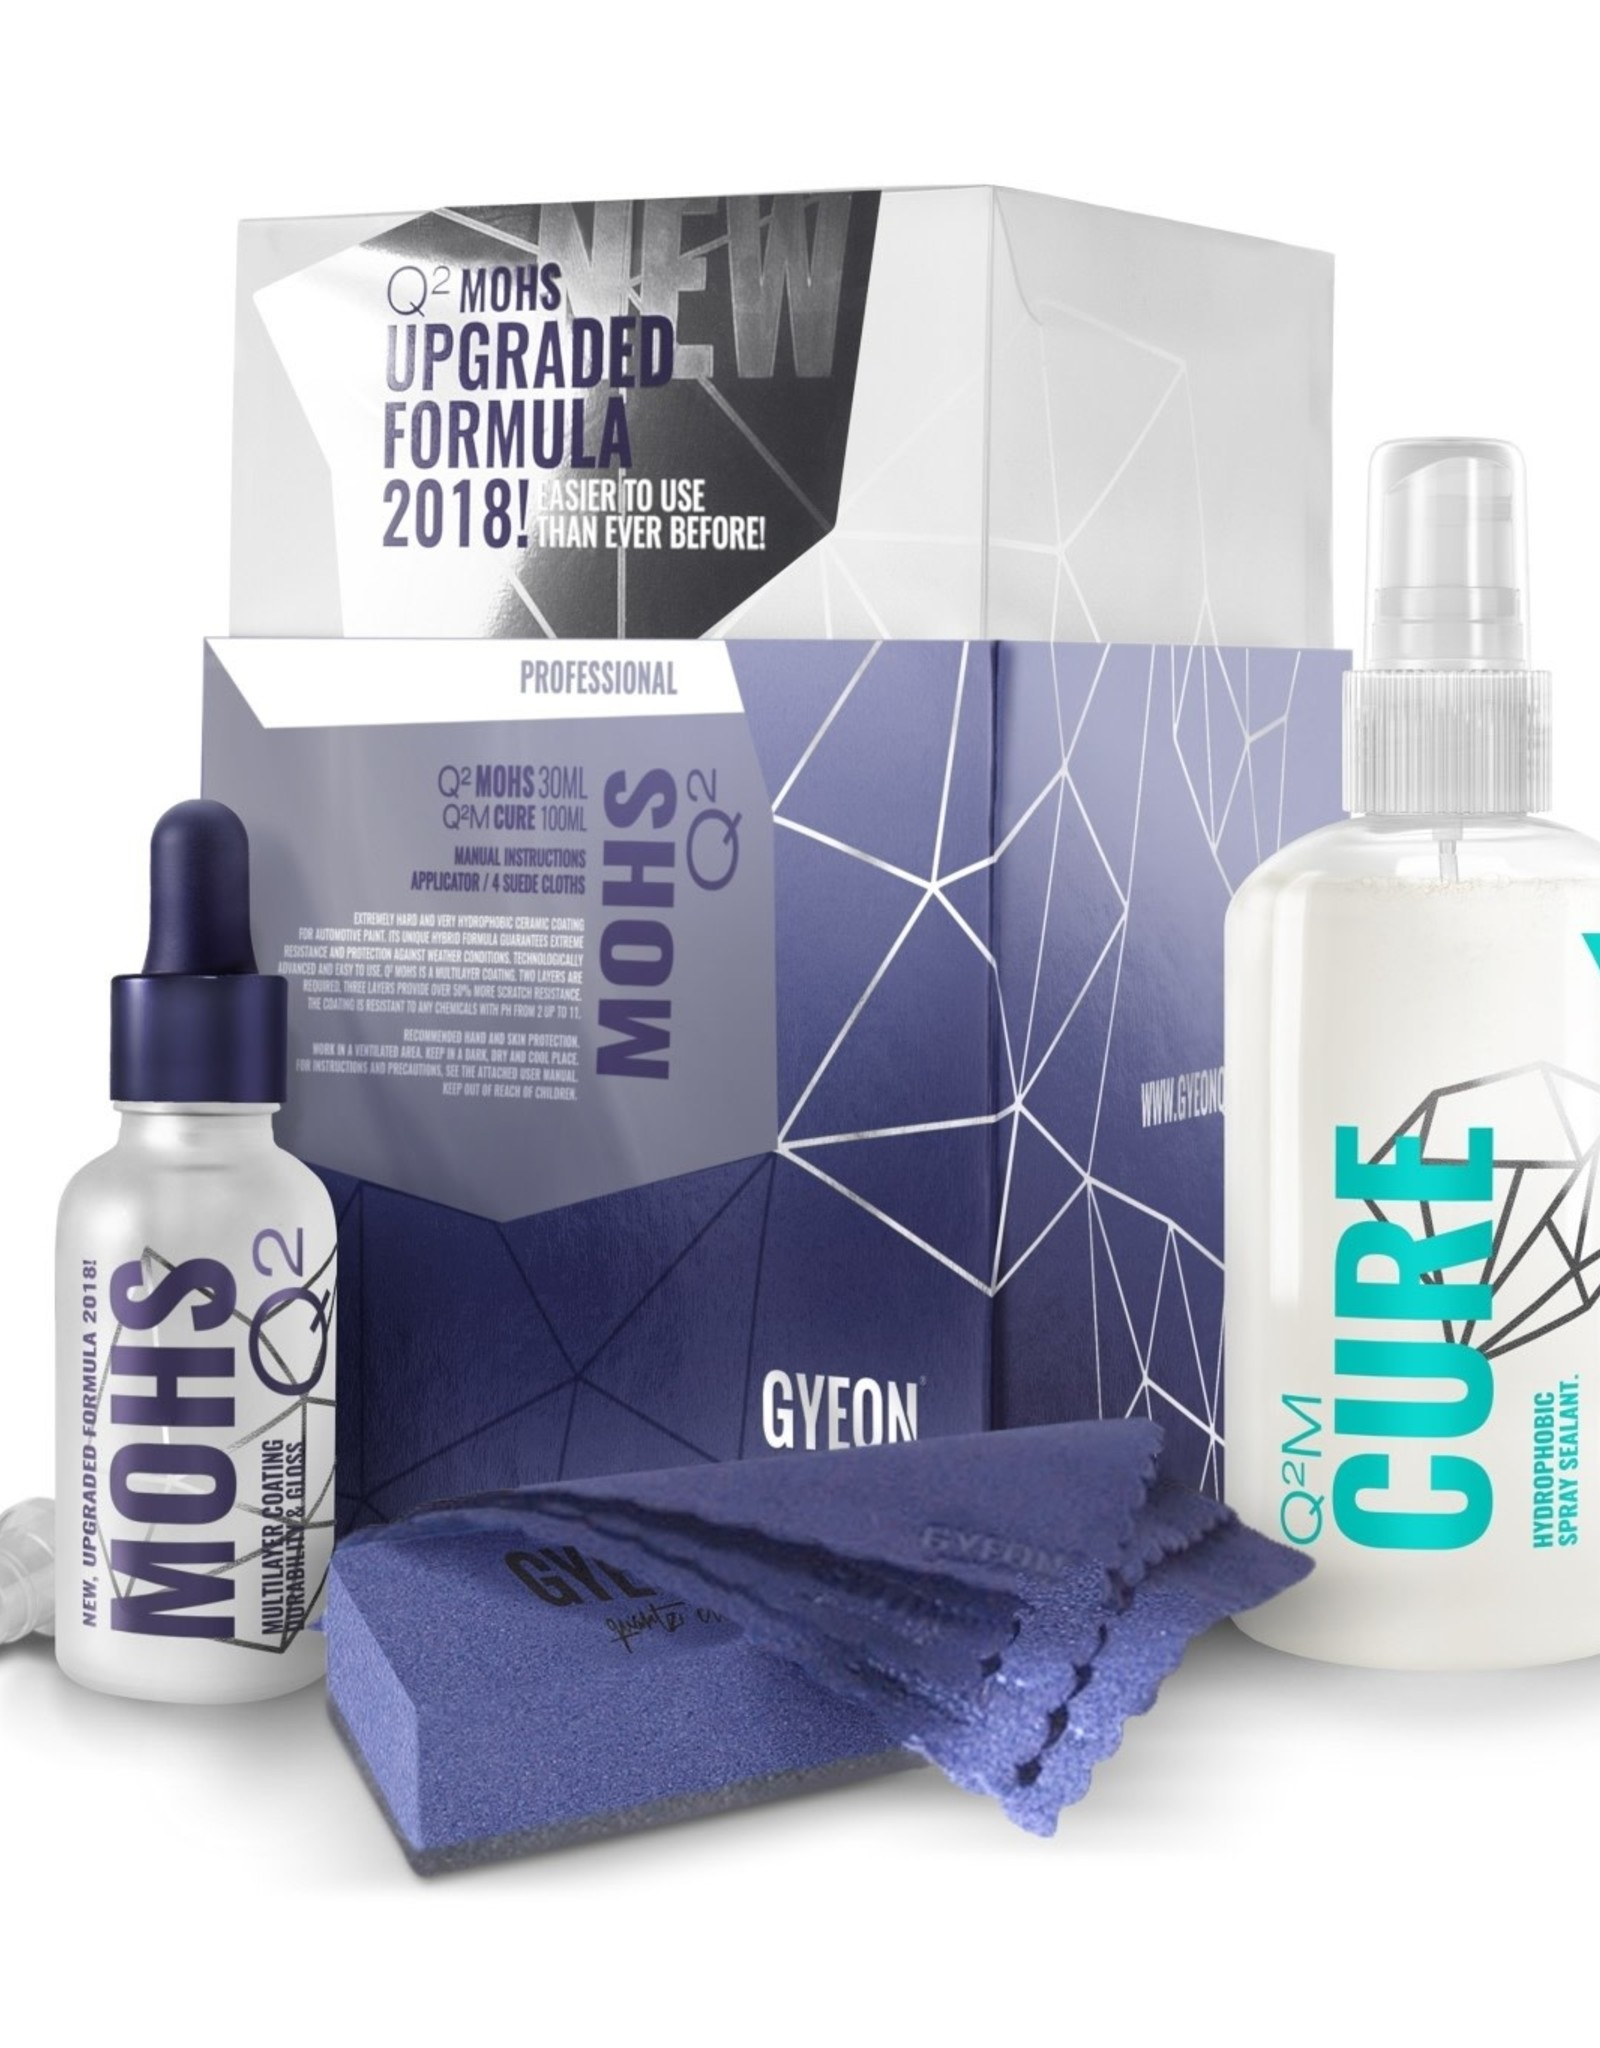 Gyeon Q2 Mohs 100ml + Cure 100ml